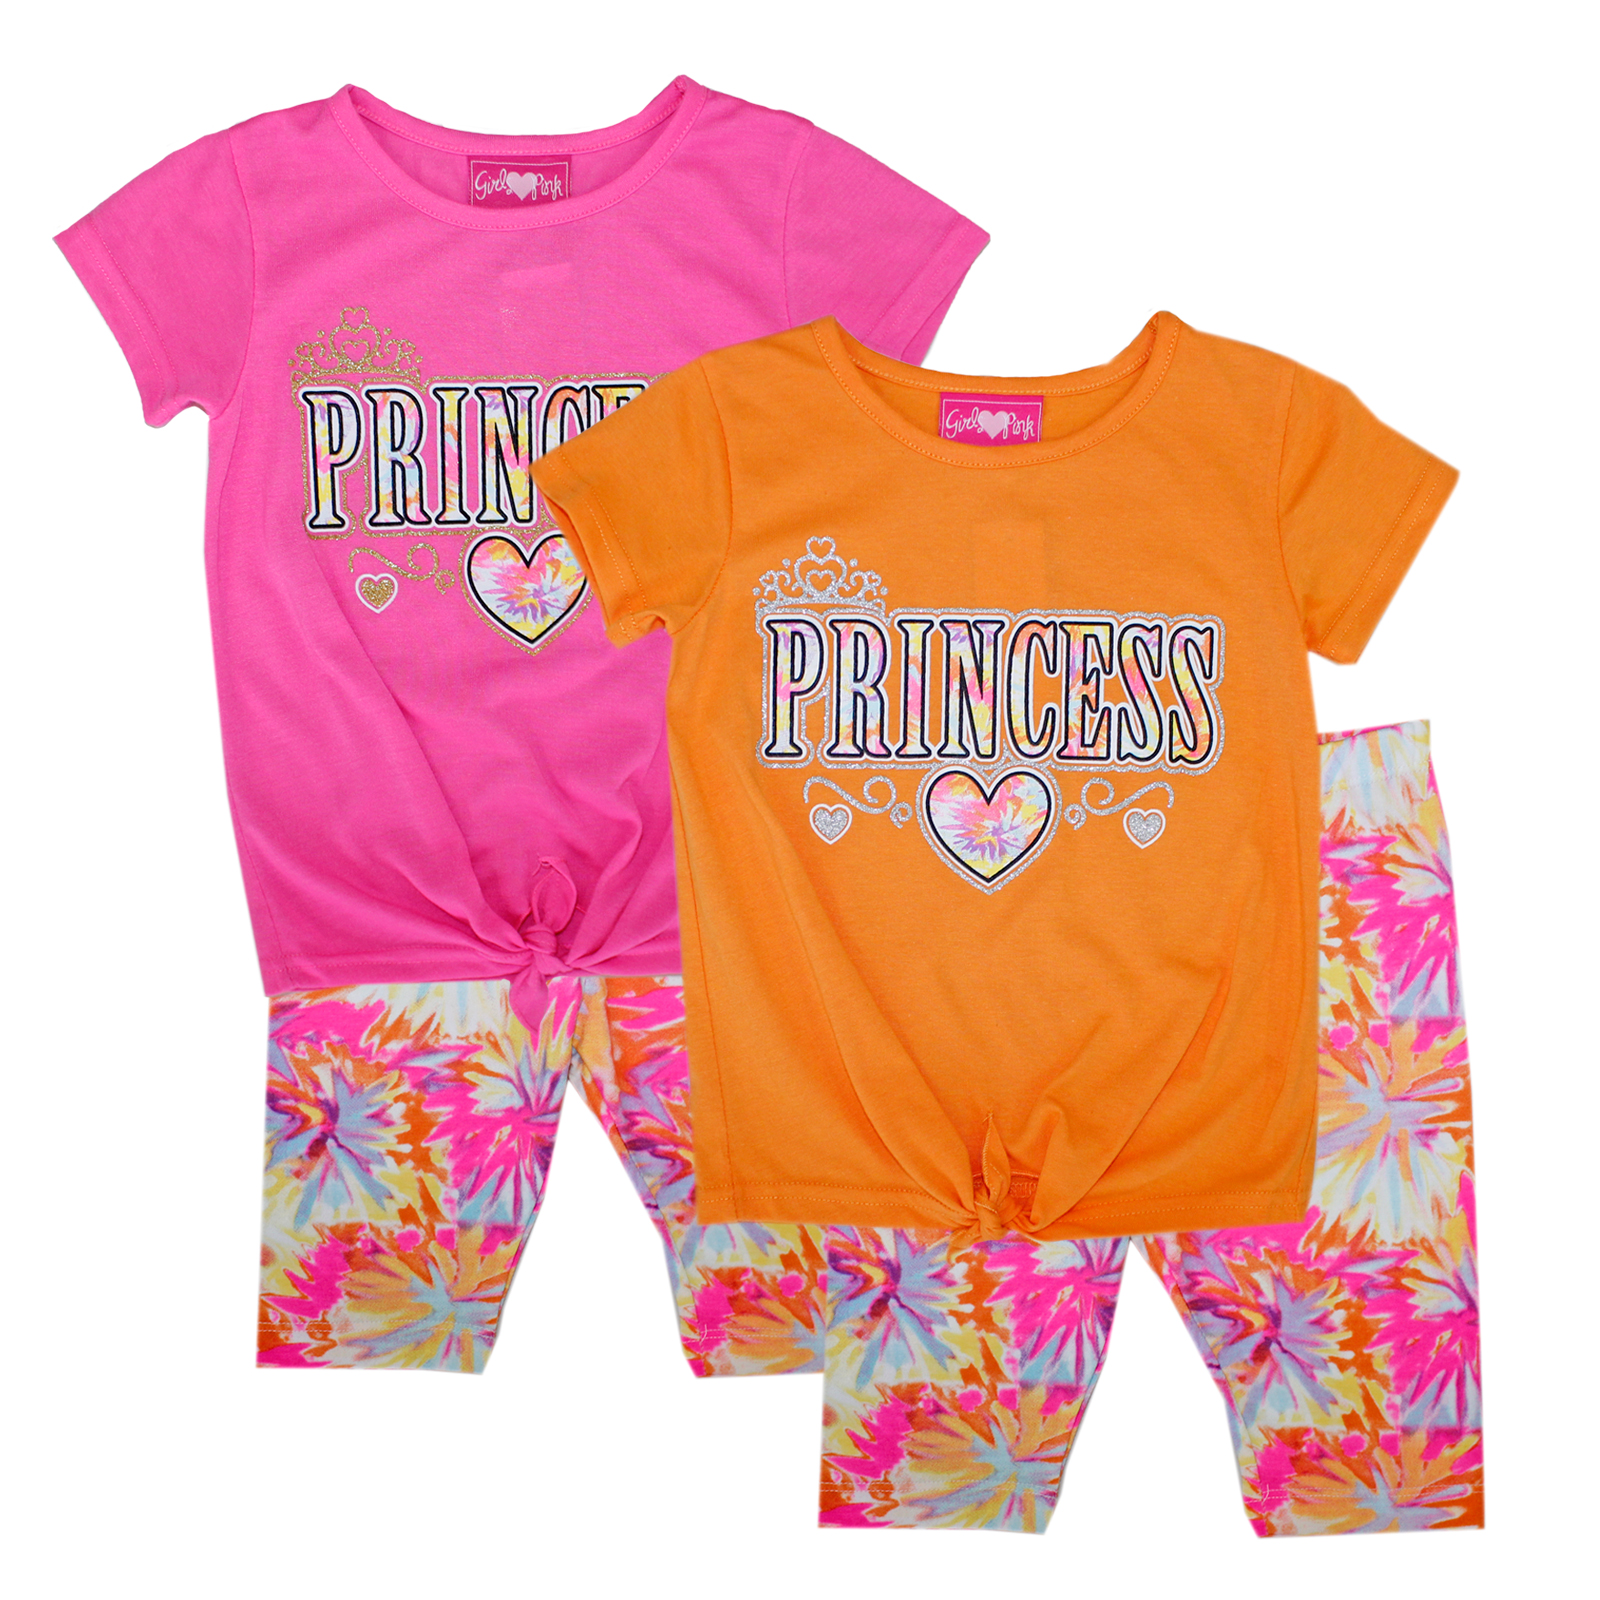 GIRLS PINK Toddler Tie Front Top Biker Set